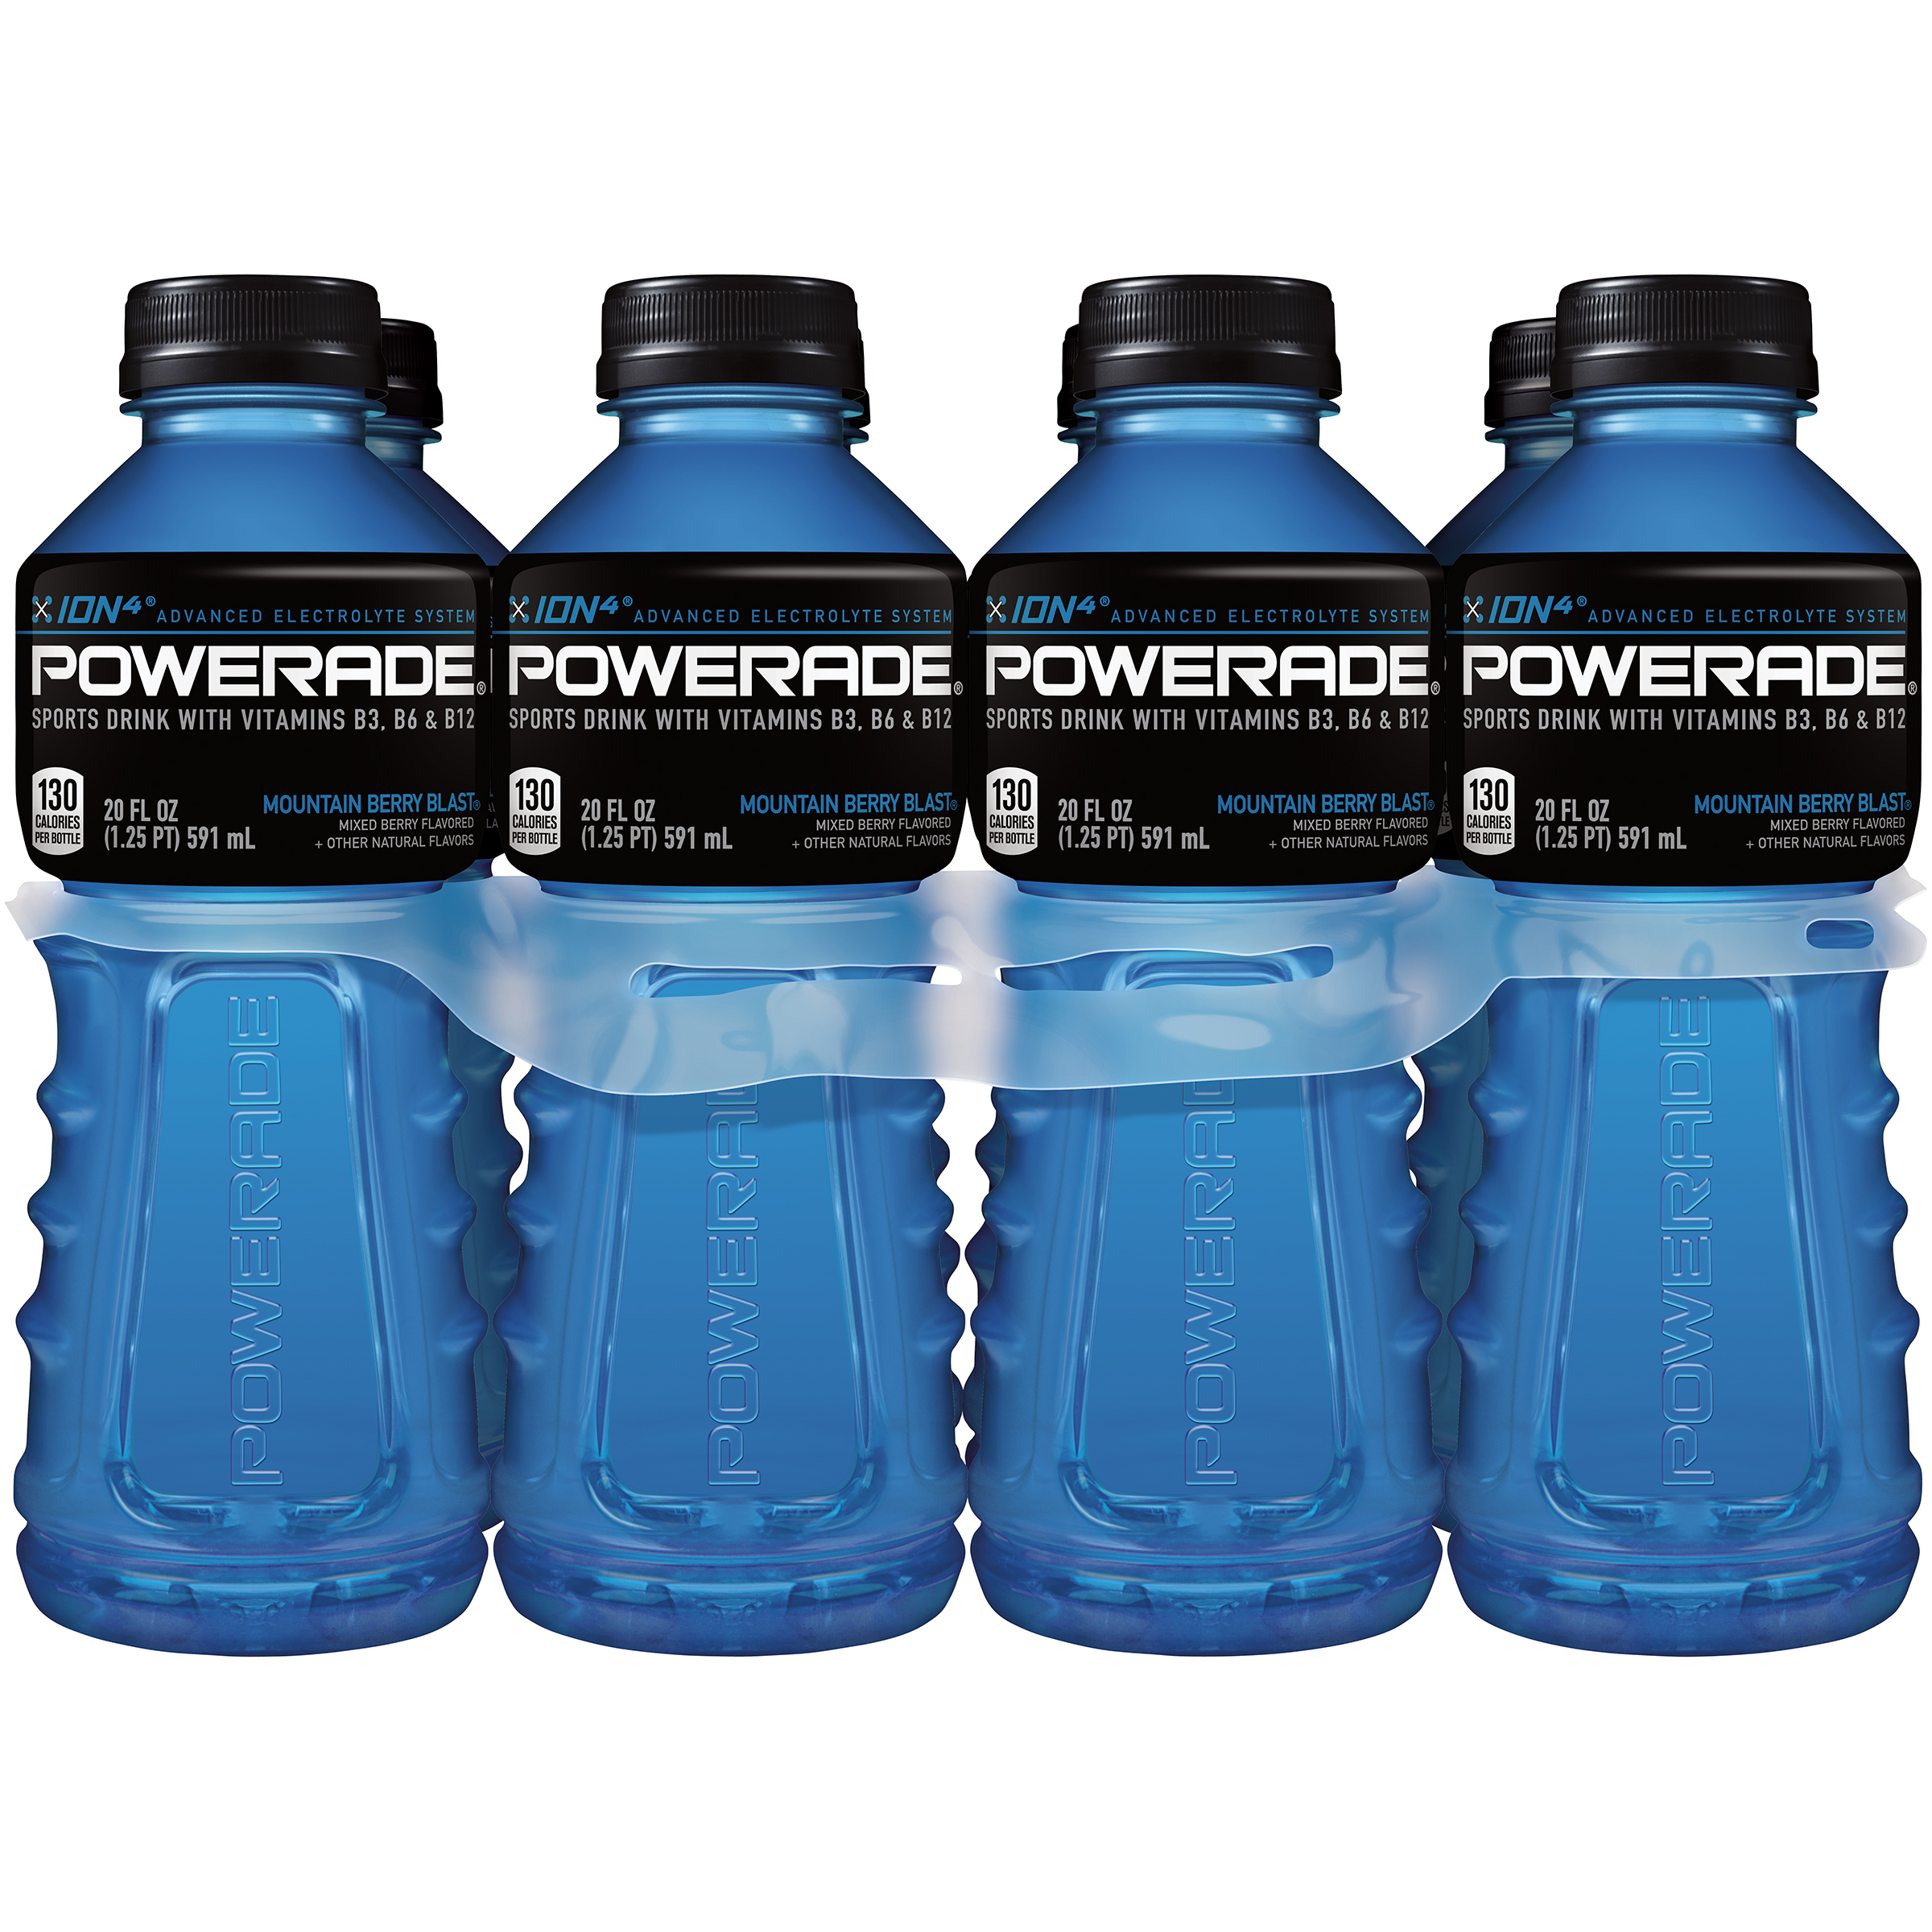 Powerade ion4 Sports Drink, Mountain Blast, 20 Fl Oz, 8 Count